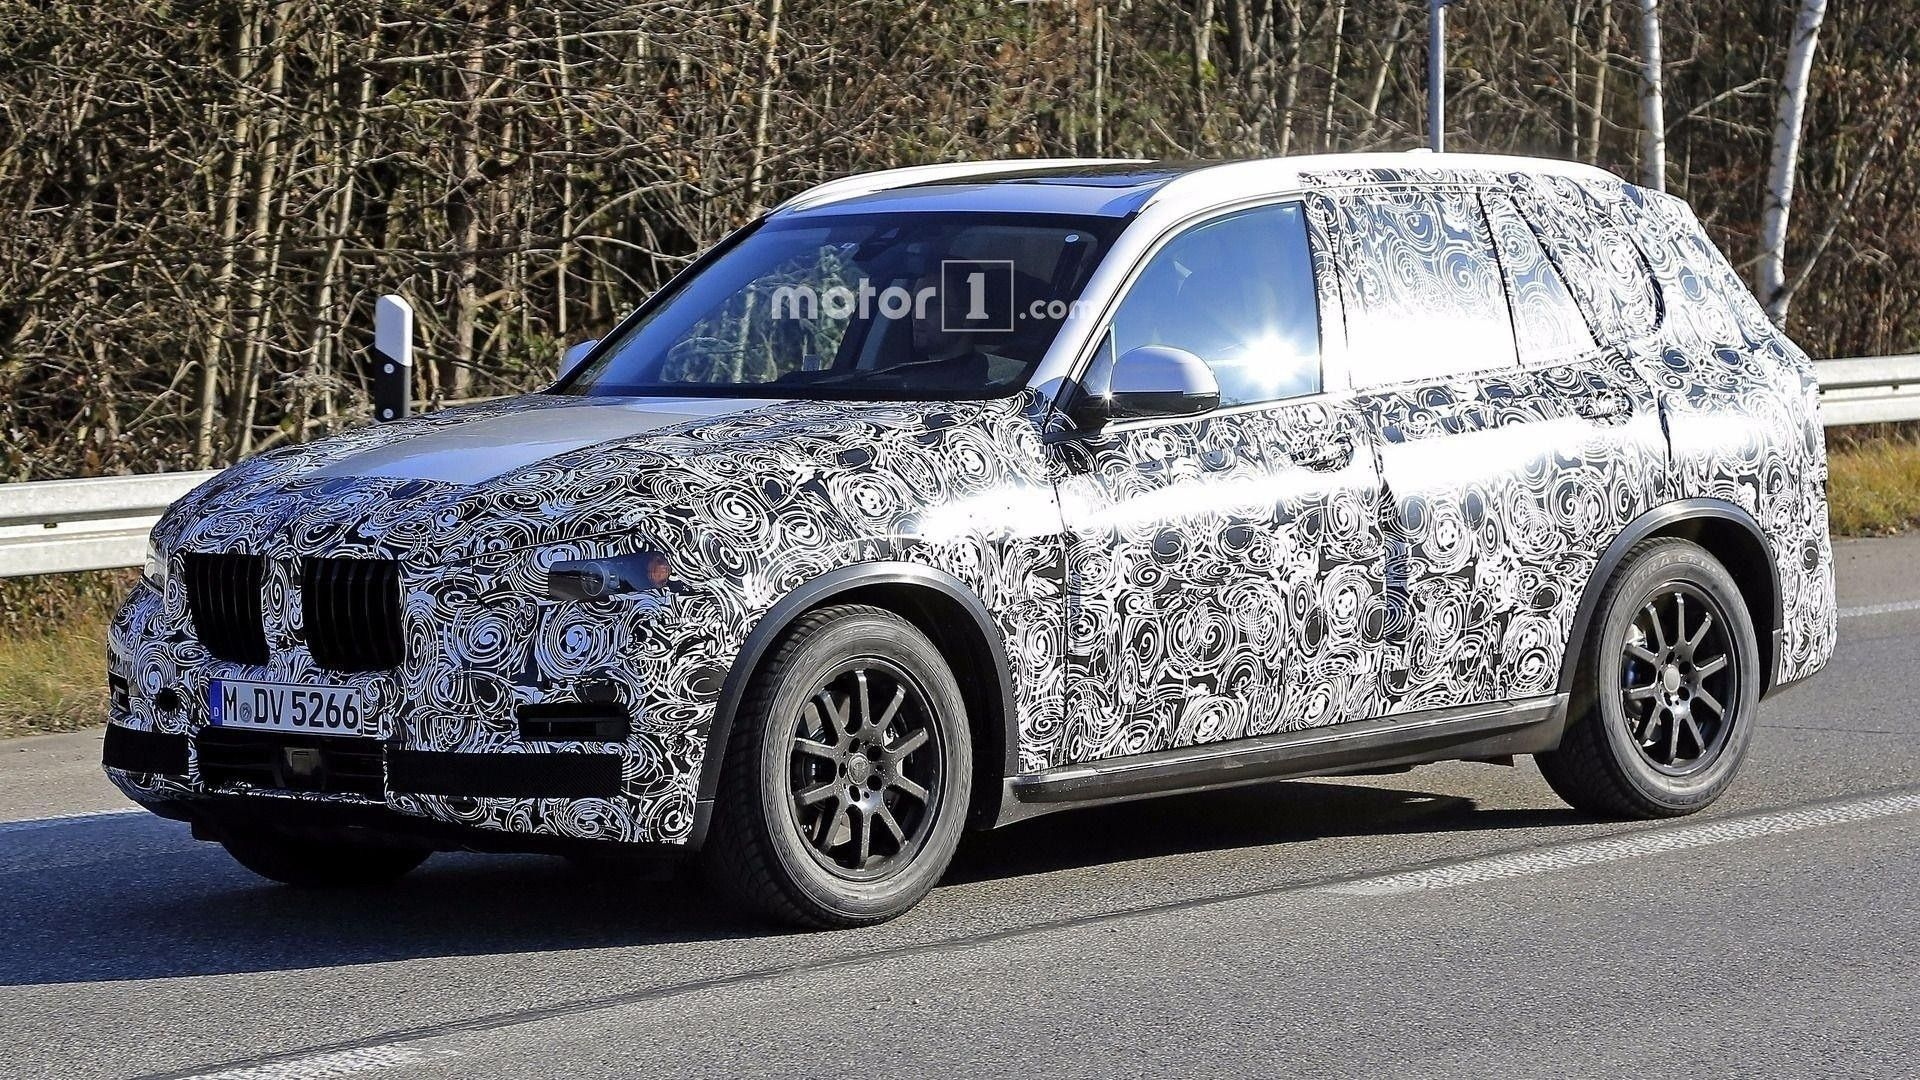 62 A 2020 Next Gen BMW X5 Suv Model